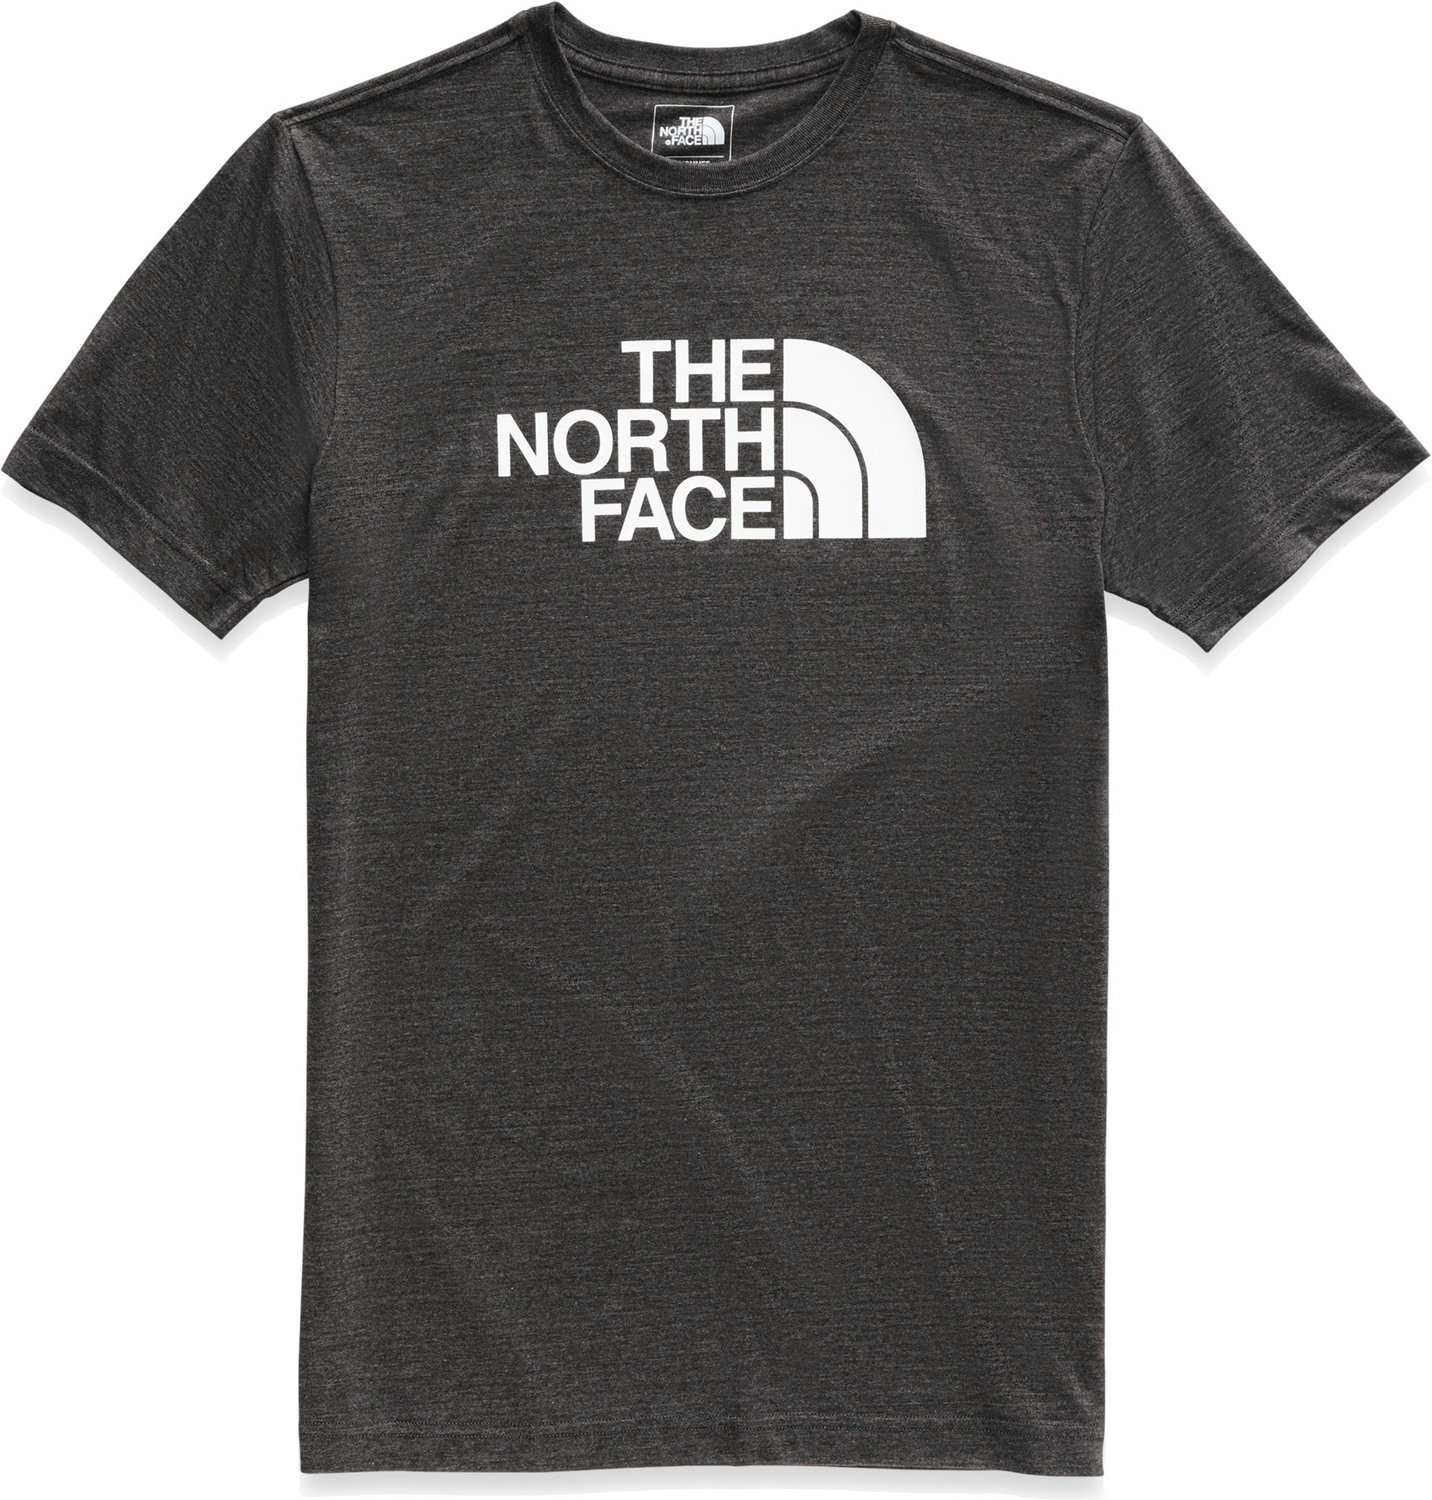 dcbdd26fc Display product reviews for The North Face Men's Half Dome Triblend Short  Sleeve T-shirt